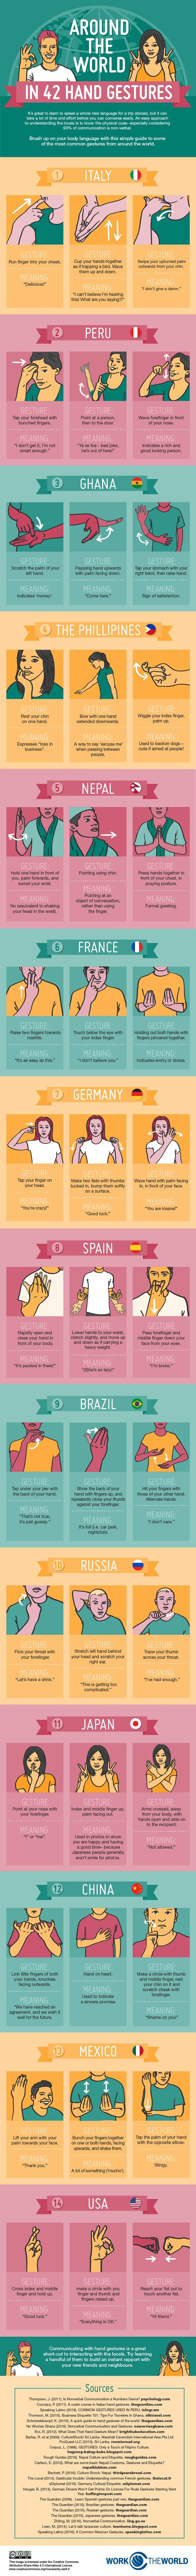 Infographic: Around The World In 42 Hand Gestures - DesignTAXI.com